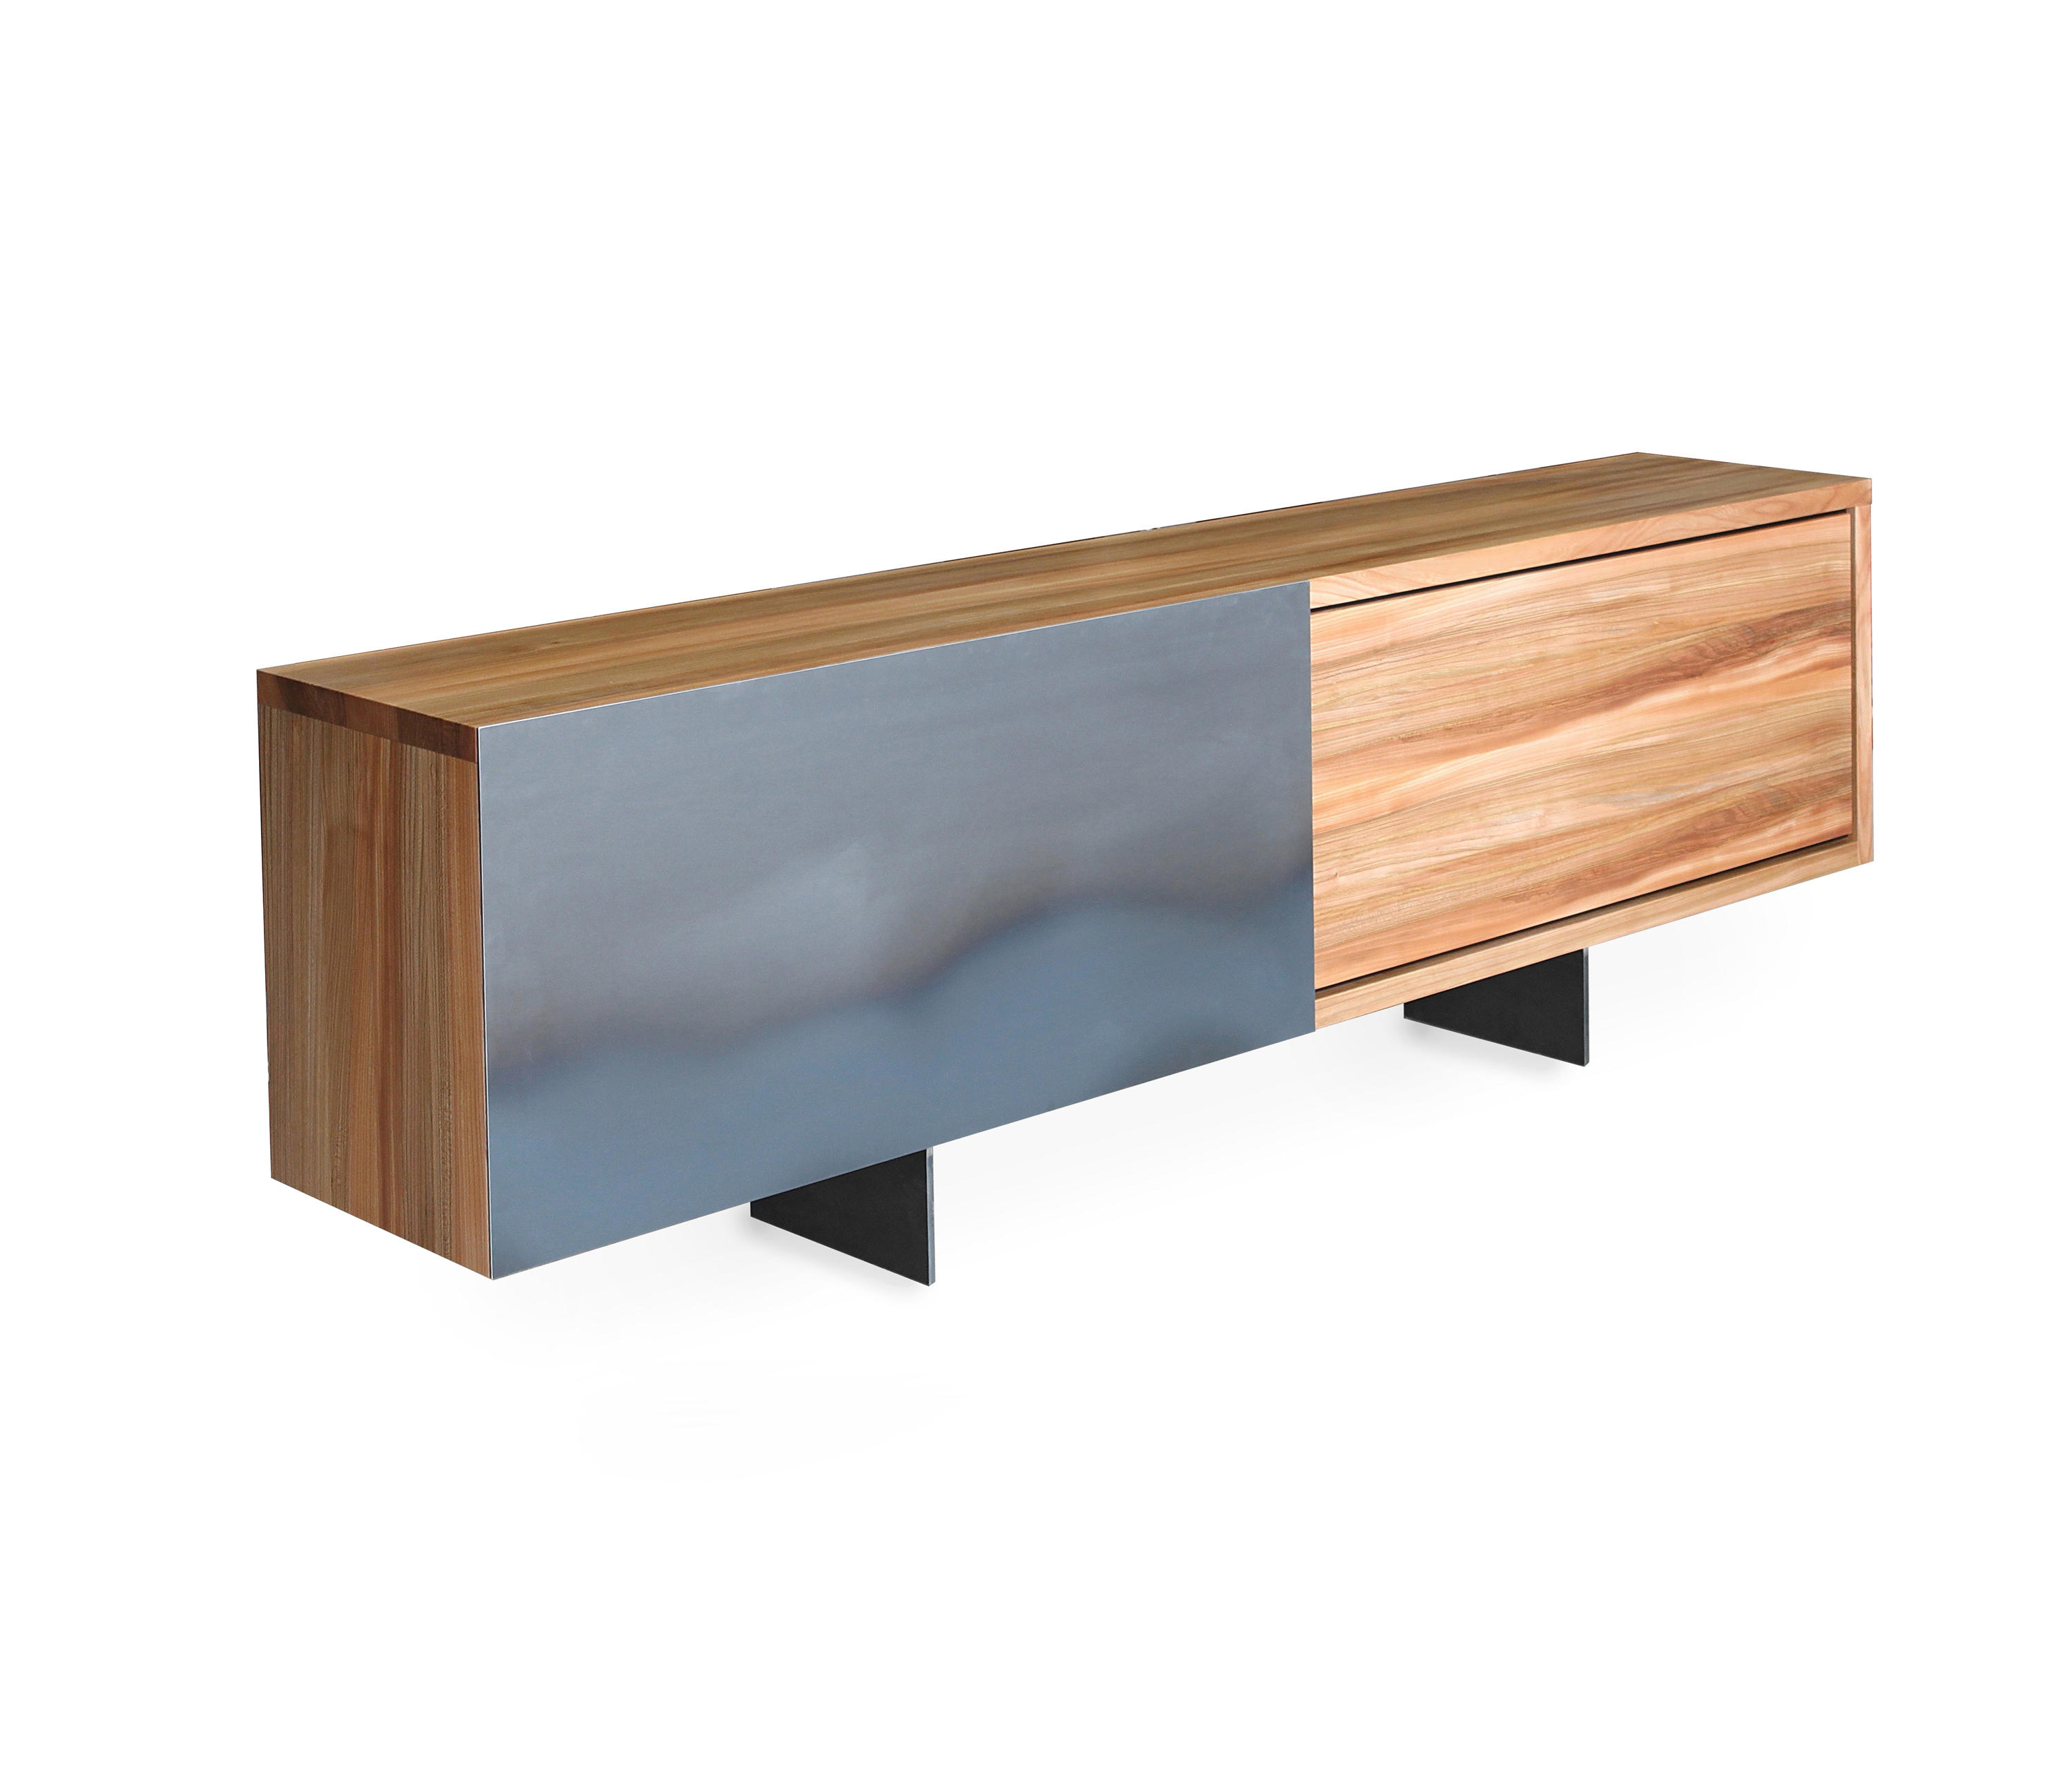 ign b2 sideboard sideboards kommoden von ign design architonic. Black Bedroom Furniture Sets. Home Design Ideas